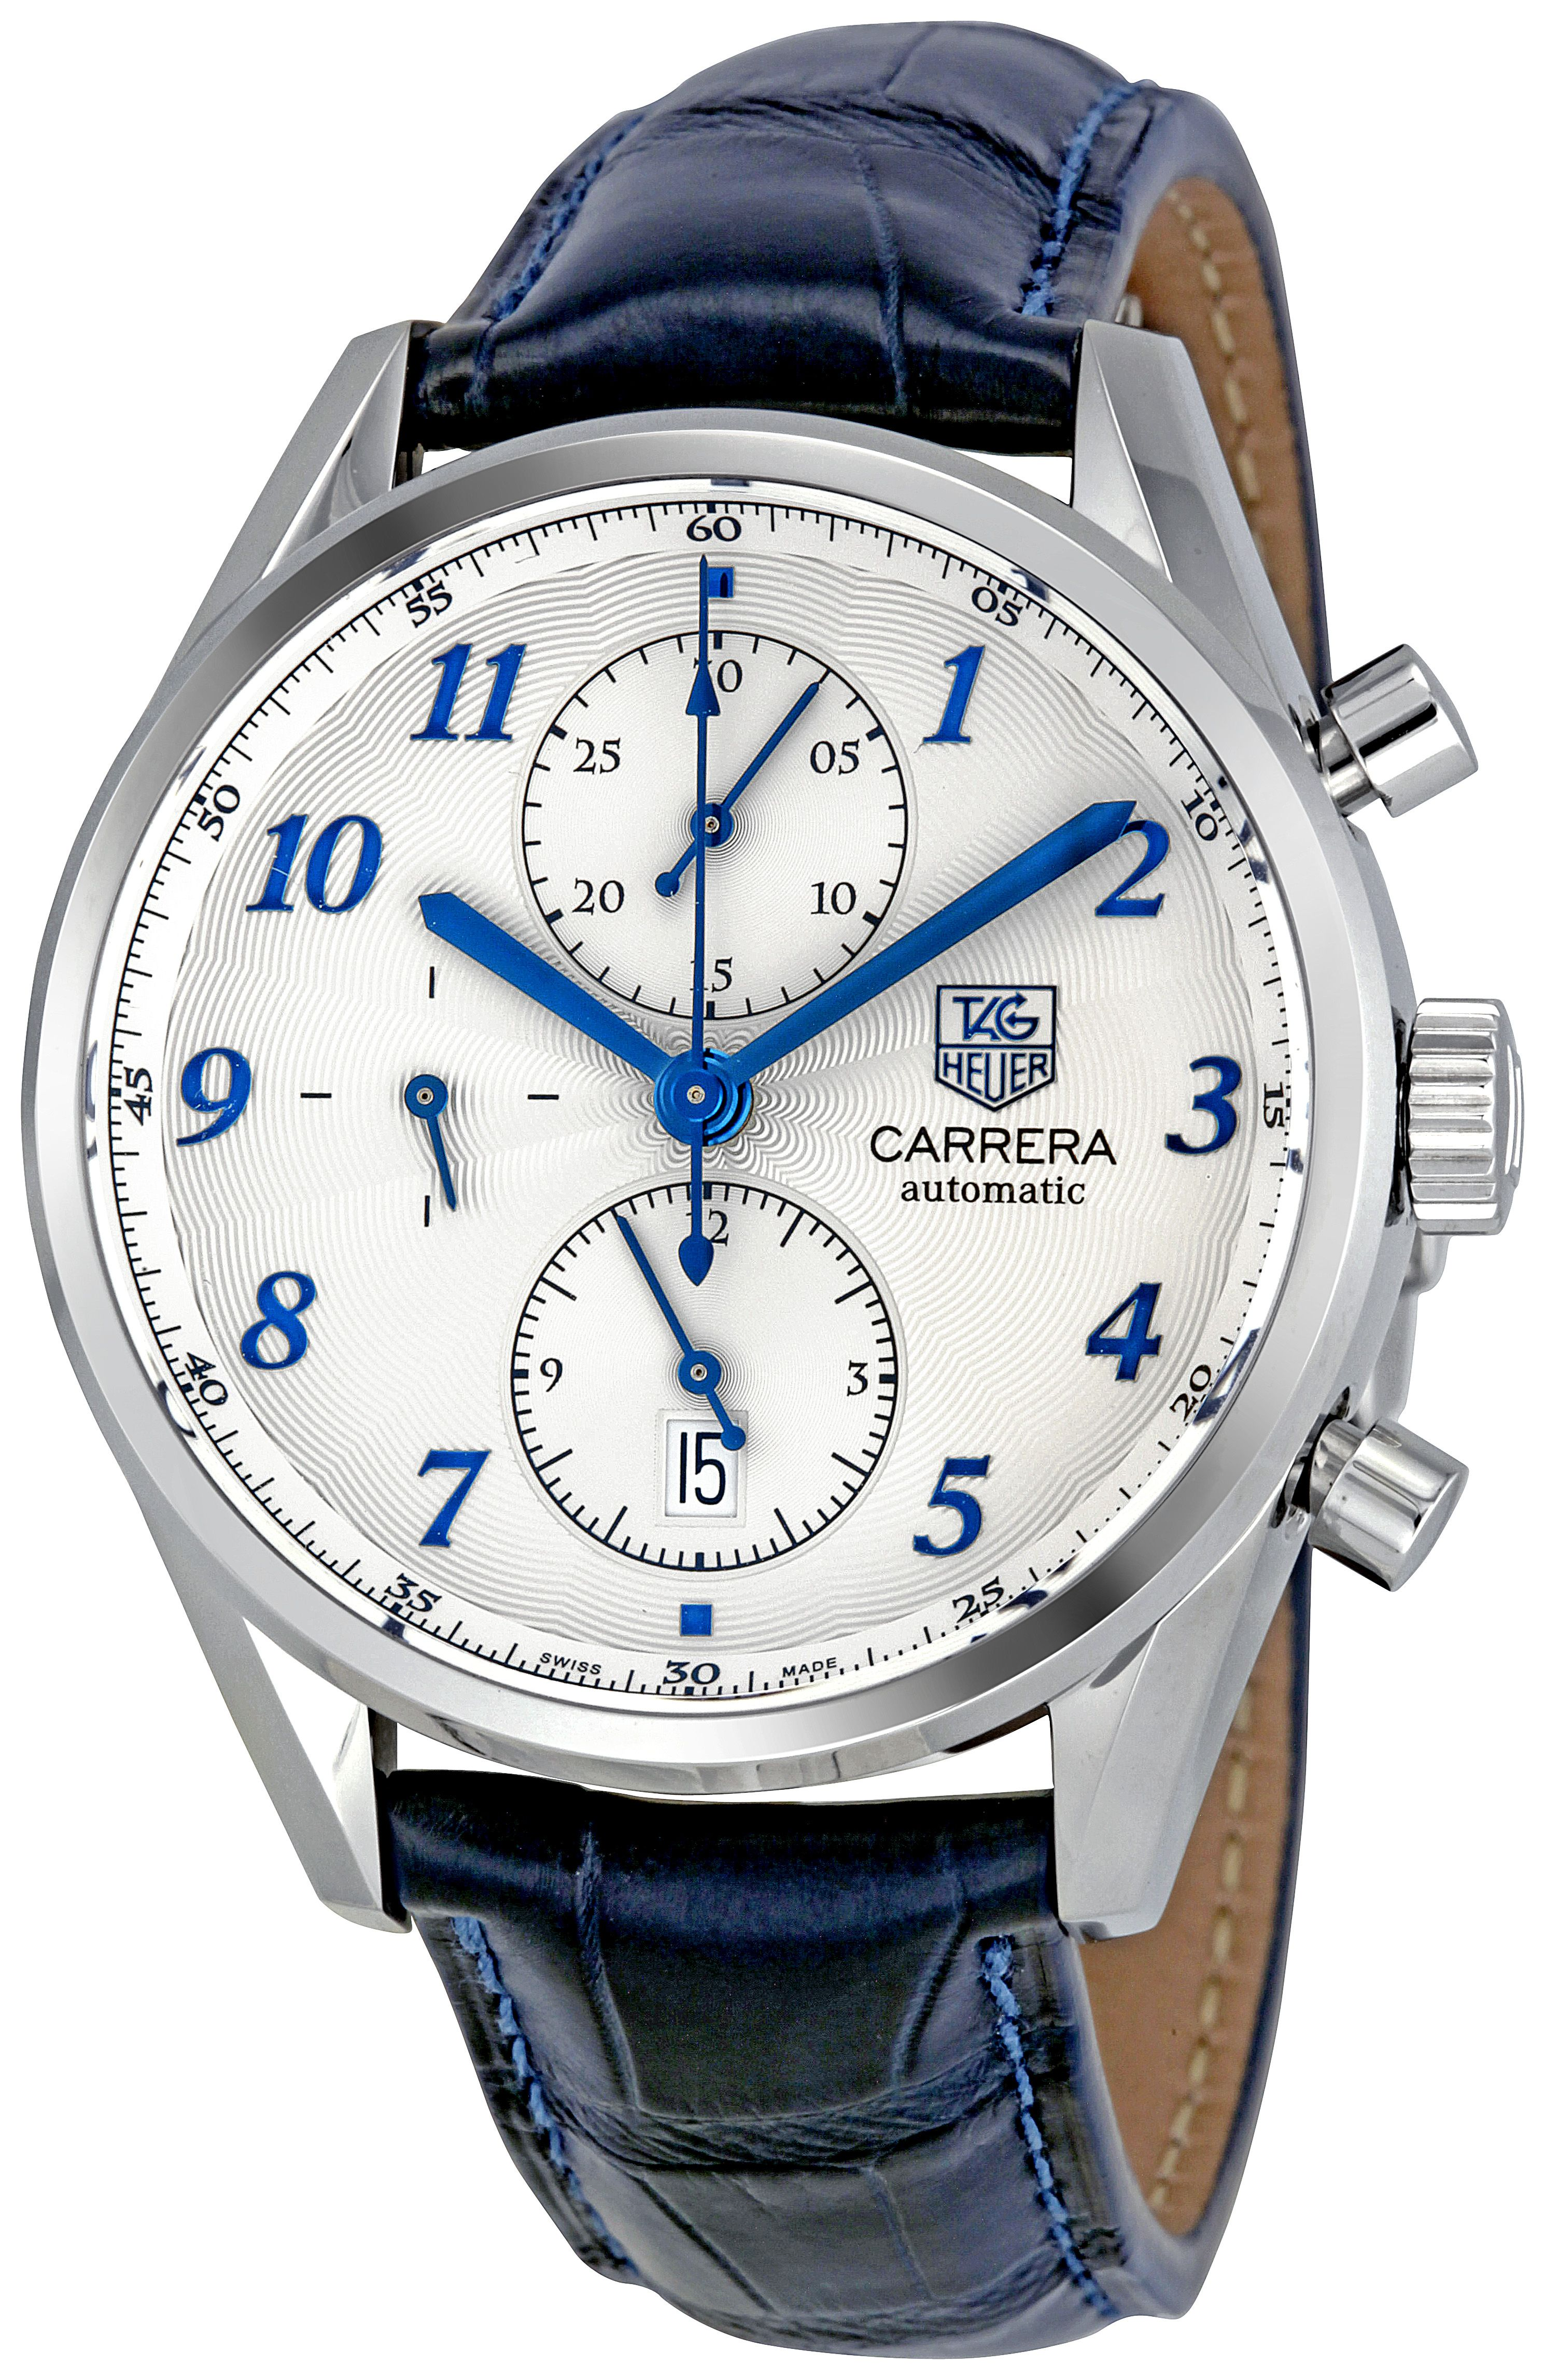 1c8754bfa1a Tag Heuer Carrera Heritage Chronograph Automatic Blue Alligator Leather Mens  Watch CAS2111.FC6292. Is it just me, or does this look like an IWC  Portuguese?